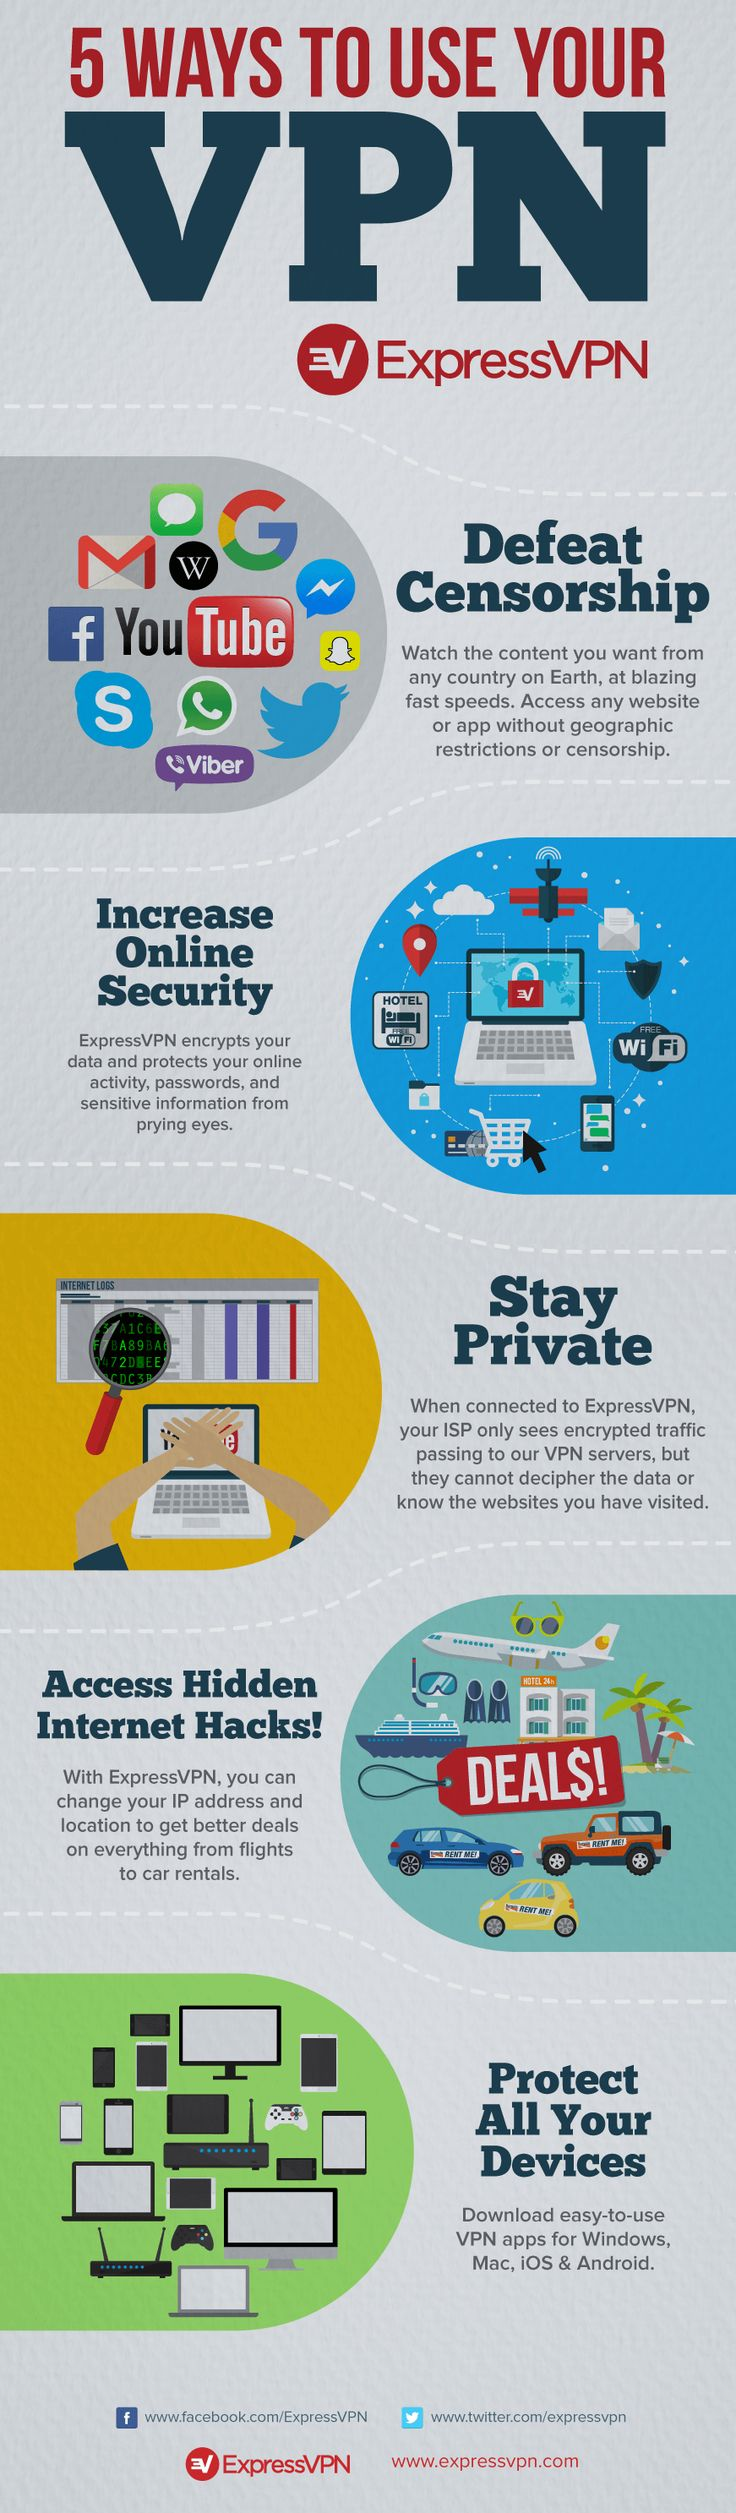 5 ways to use VPN | USING VPN IN CHINA - a guide for new visitors and travelers. The Great Firewall explained. | video information for dummies proxy server chinese visit travel explore plan beijing internet newbies noobs confusing simple faq simple guide explanation simplified about 101 #SEOTipsandTricks